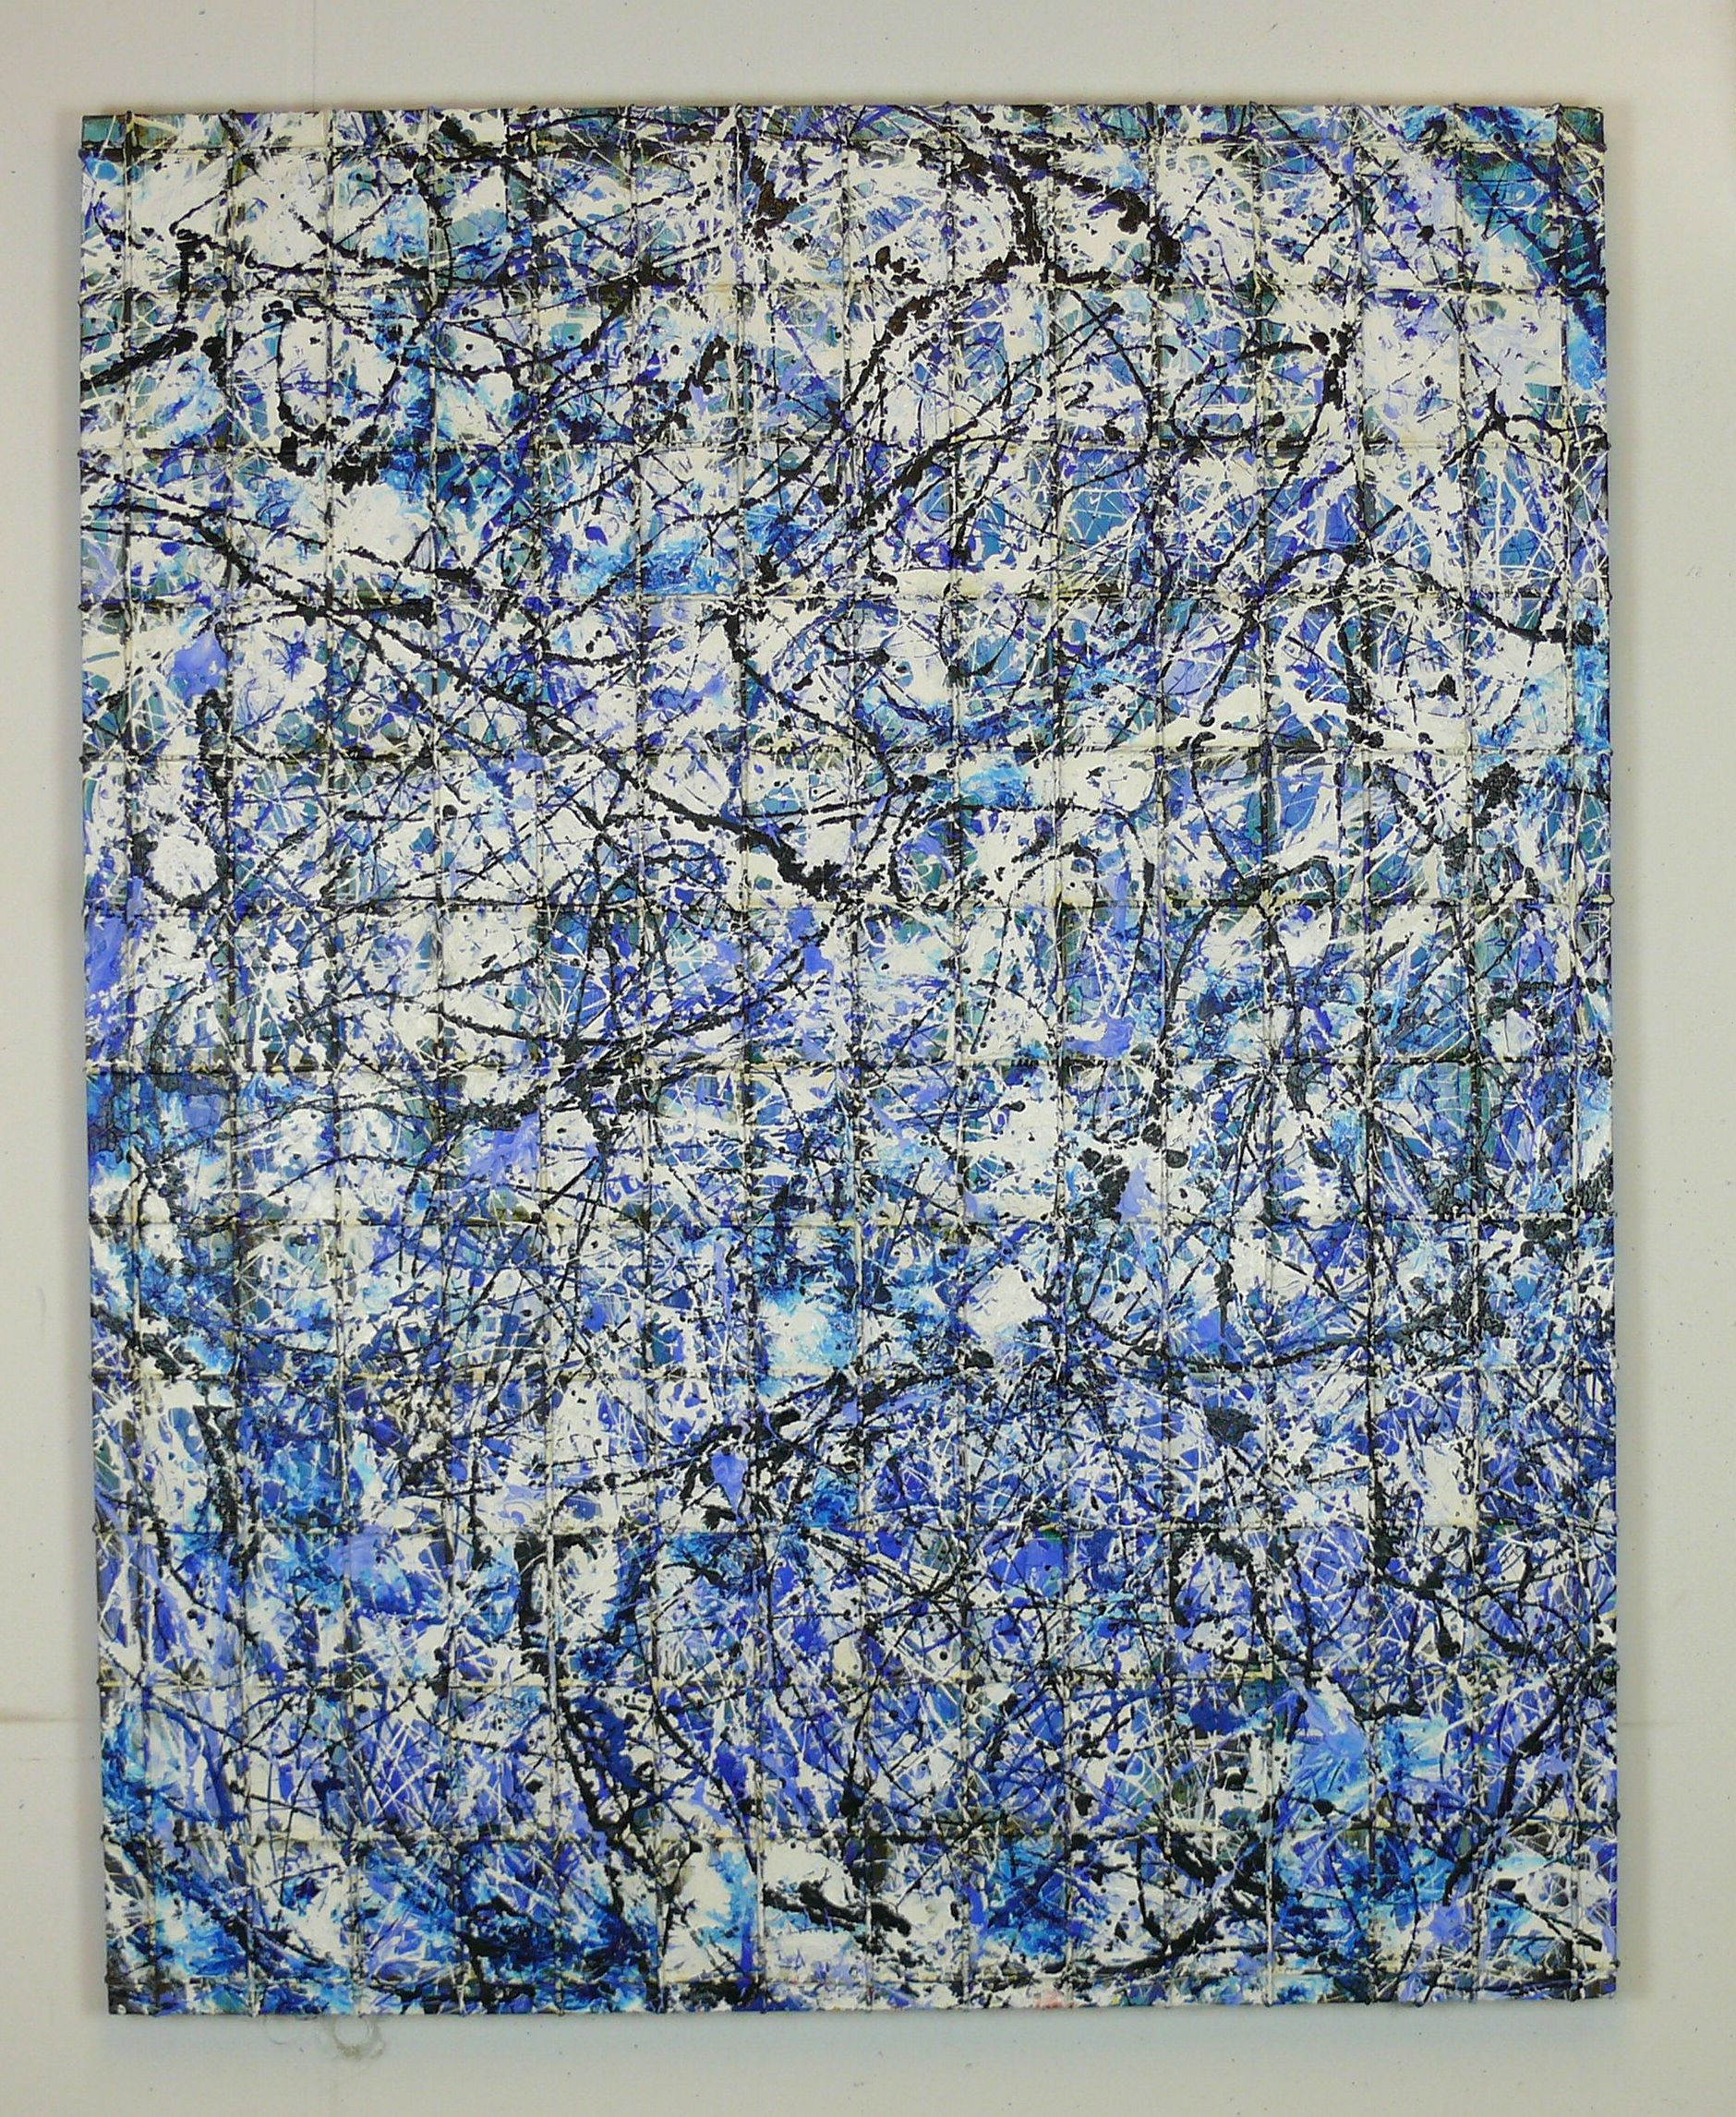 under conctruction just blue 150 x 120 cm